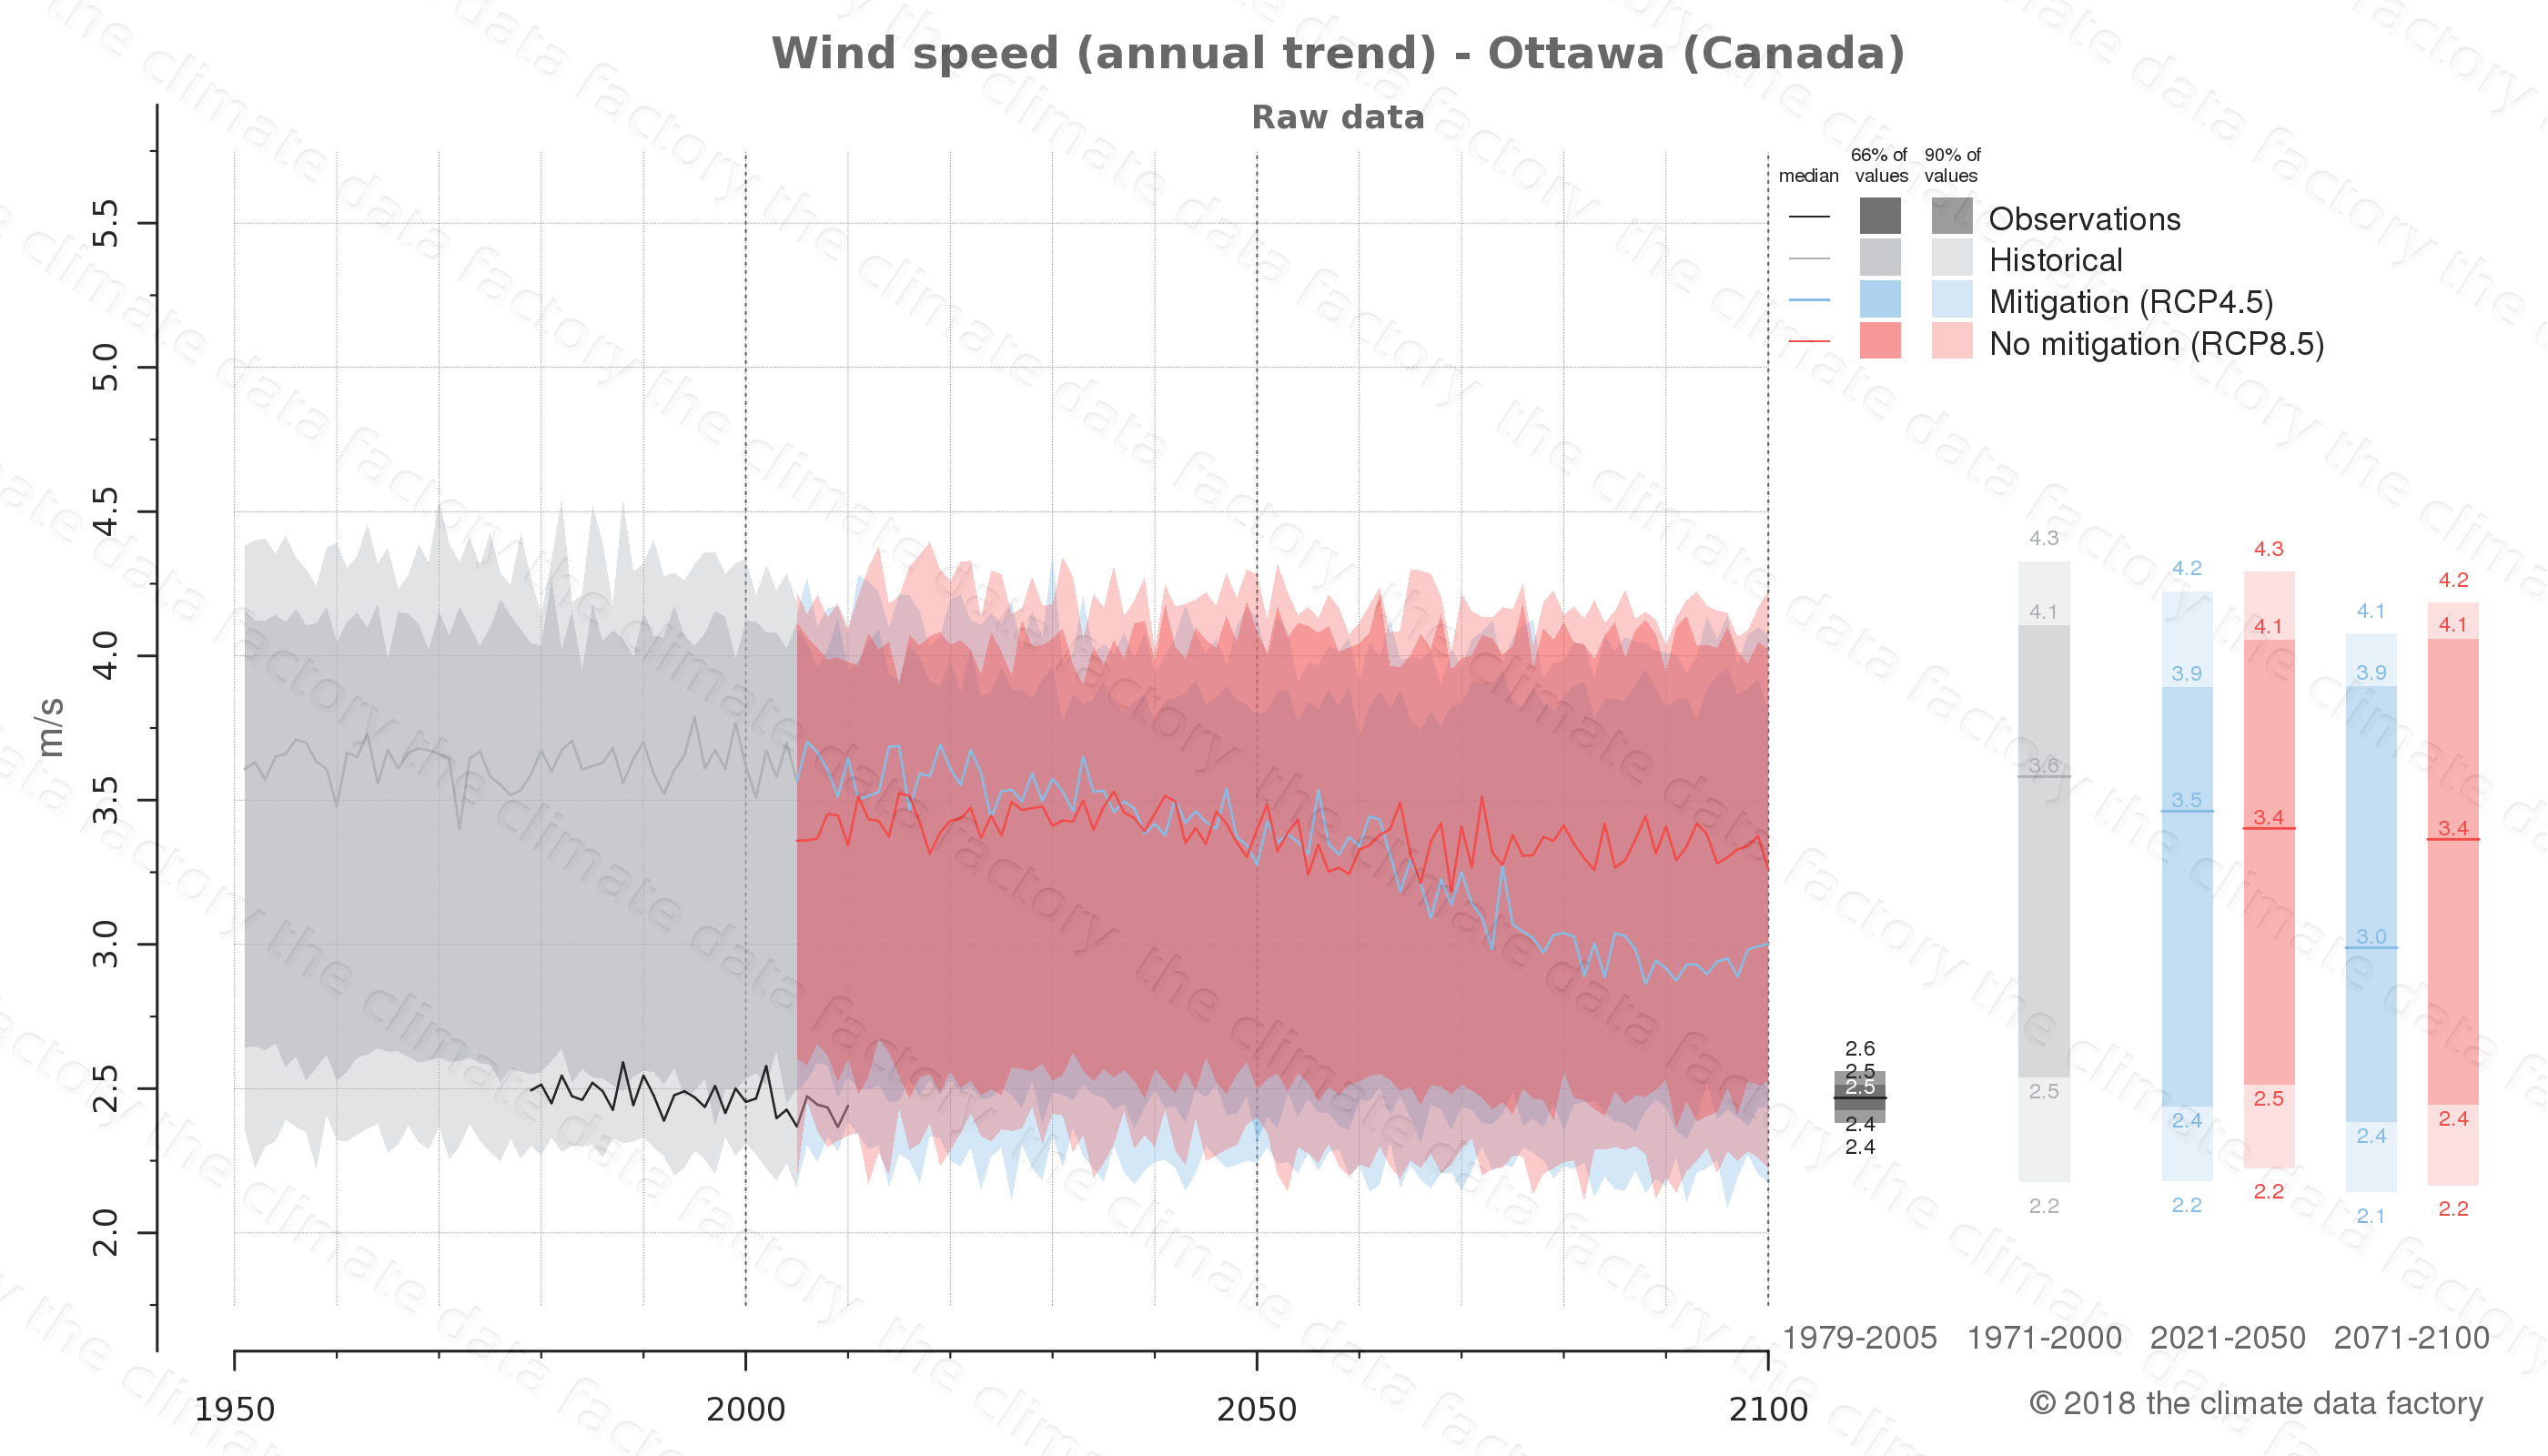 climate change data policy adaptation climate graph city data wind-speed ottawa canada